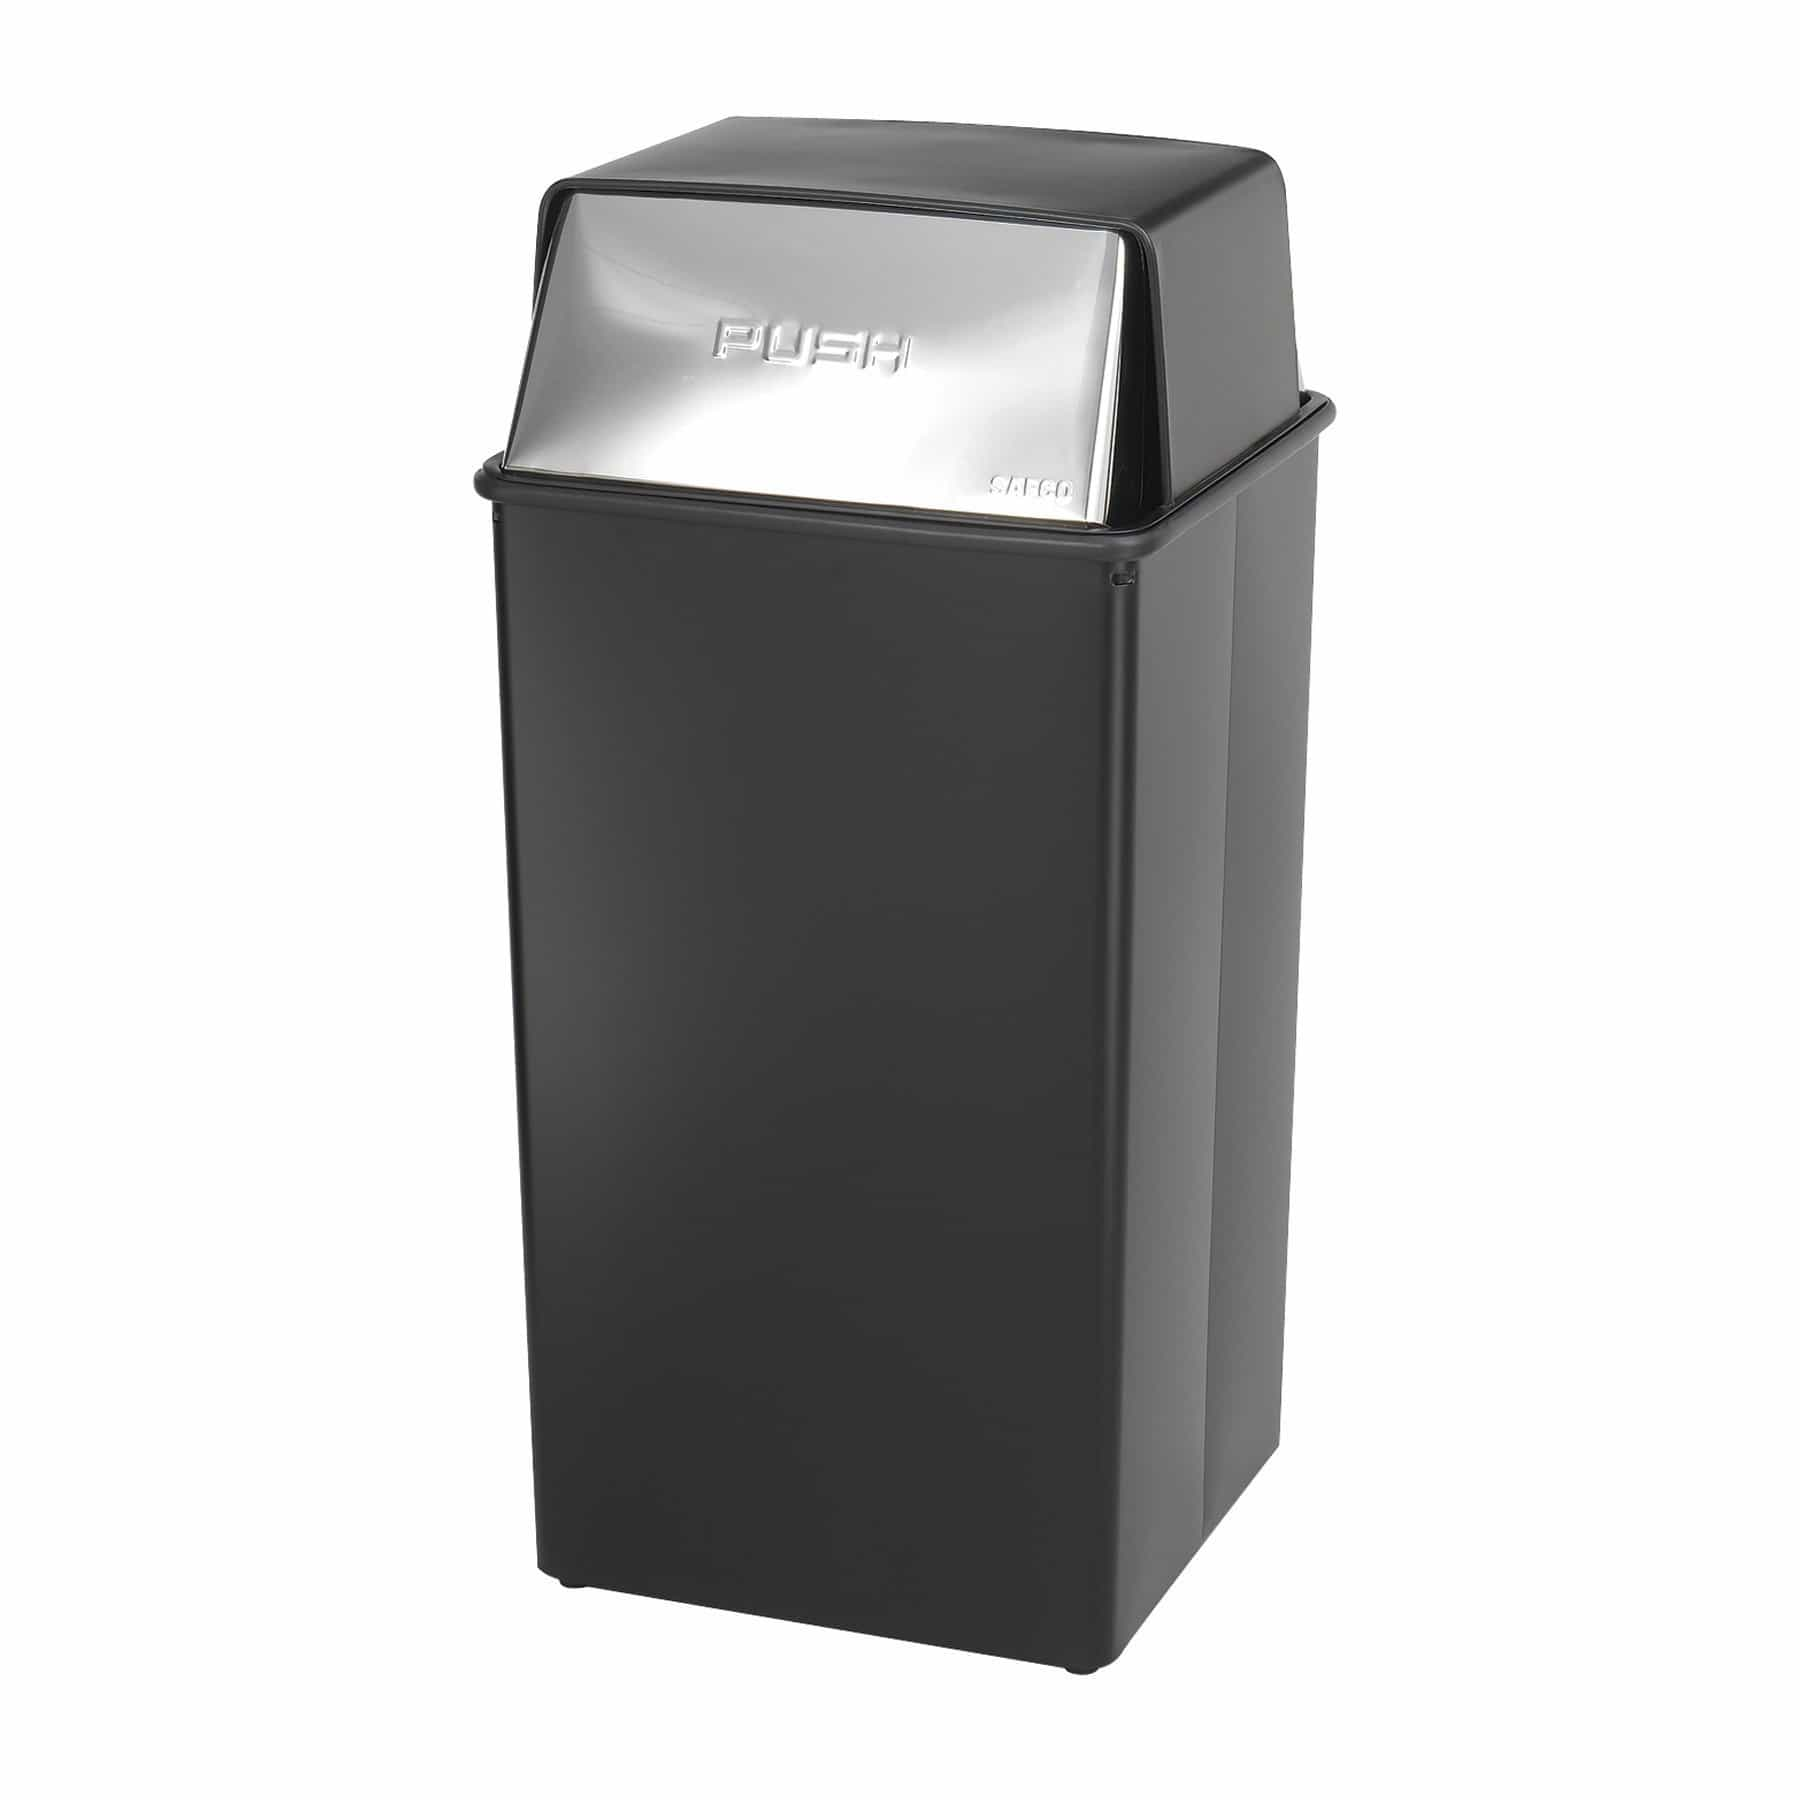 bedinhome - Reflections By Safco 36-Gallon Capacity Push Top Receptacle Trash Can - Safco - Trash Can